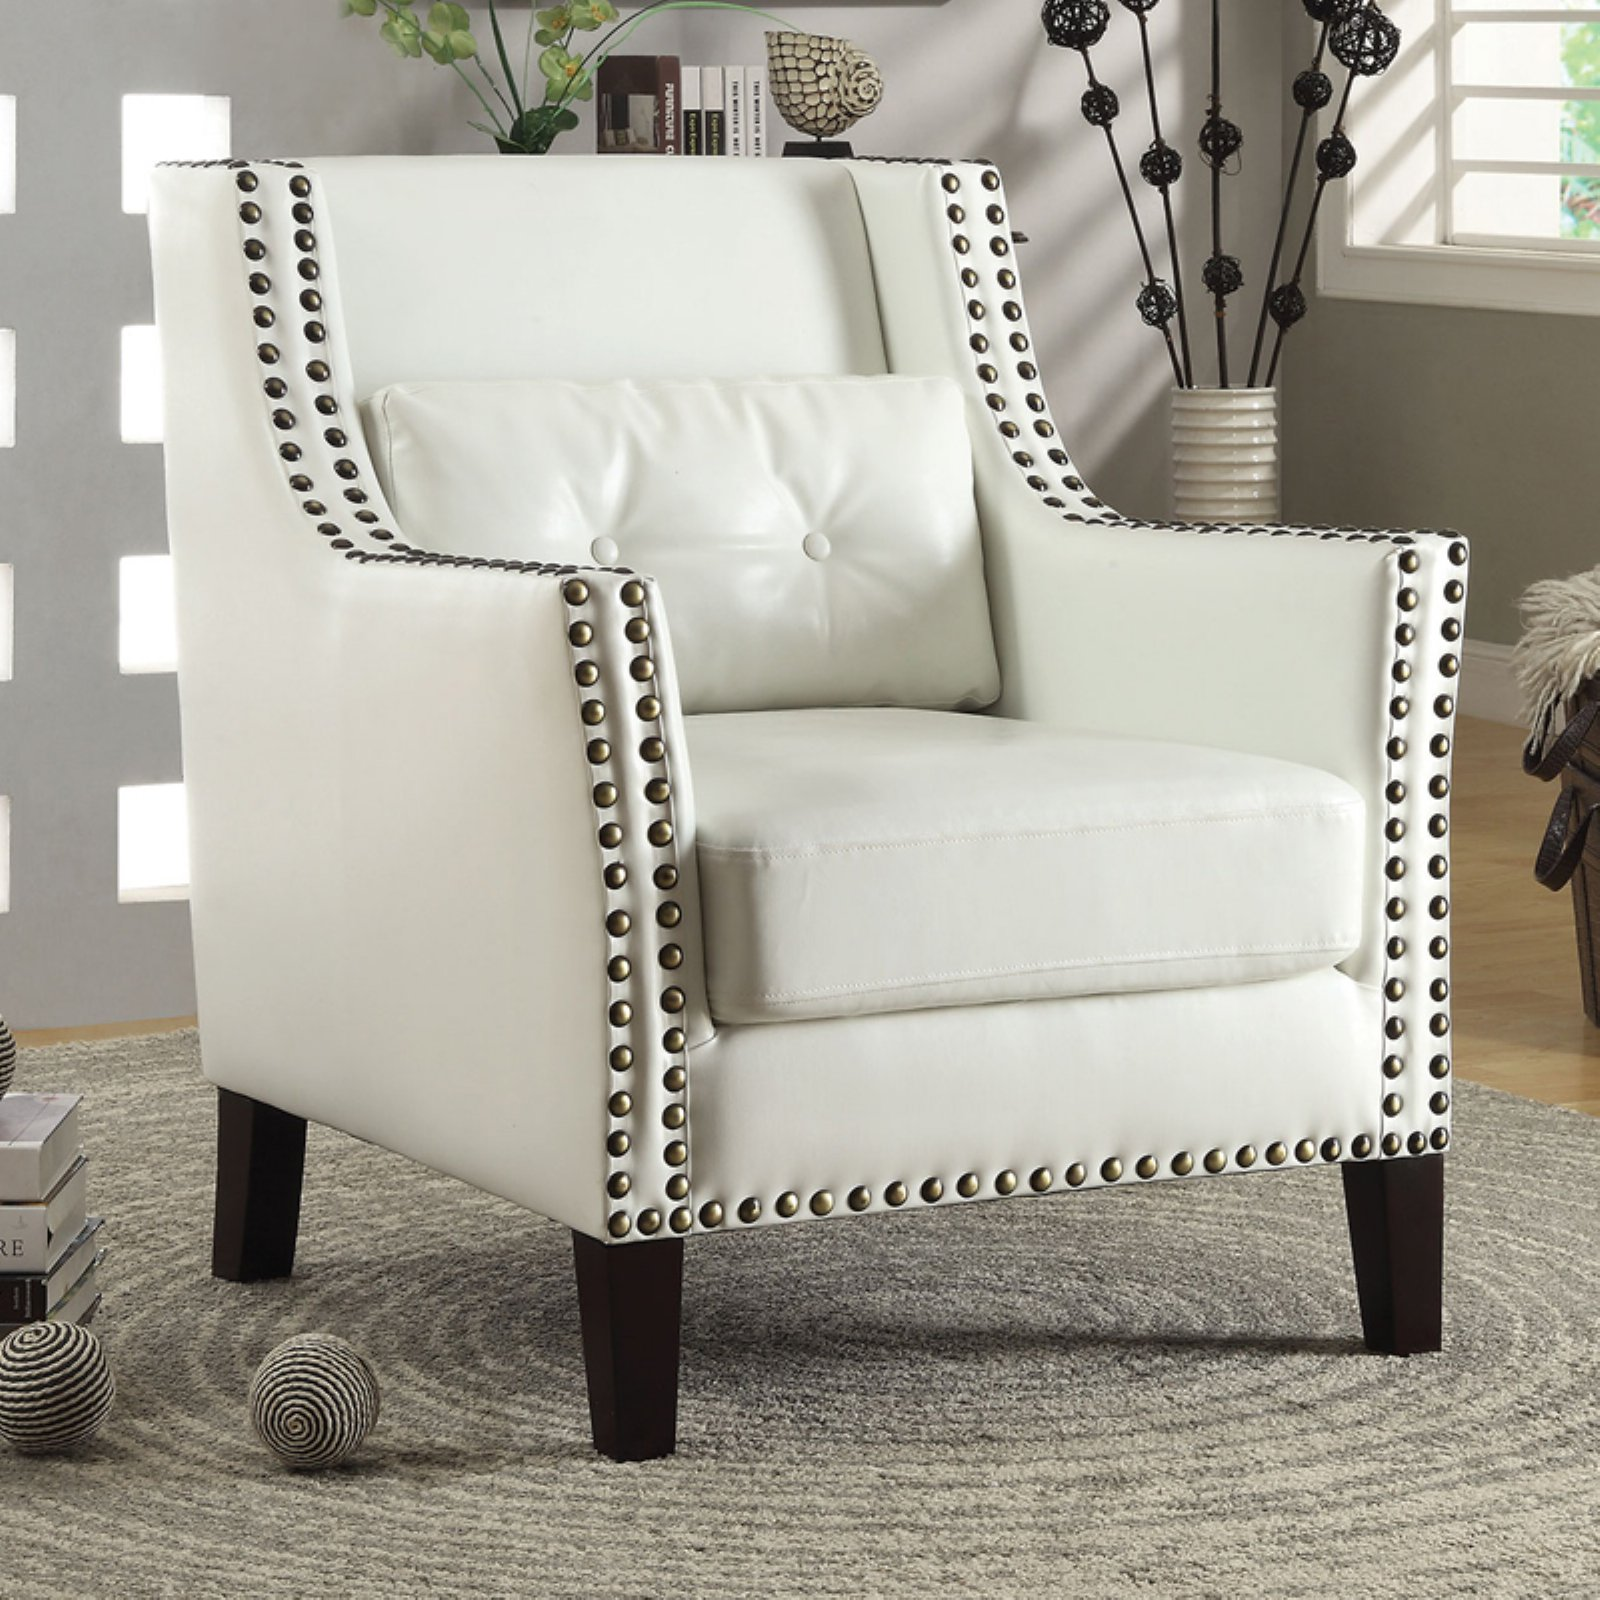 Coaster traditional leatherette accent chair white walmart com